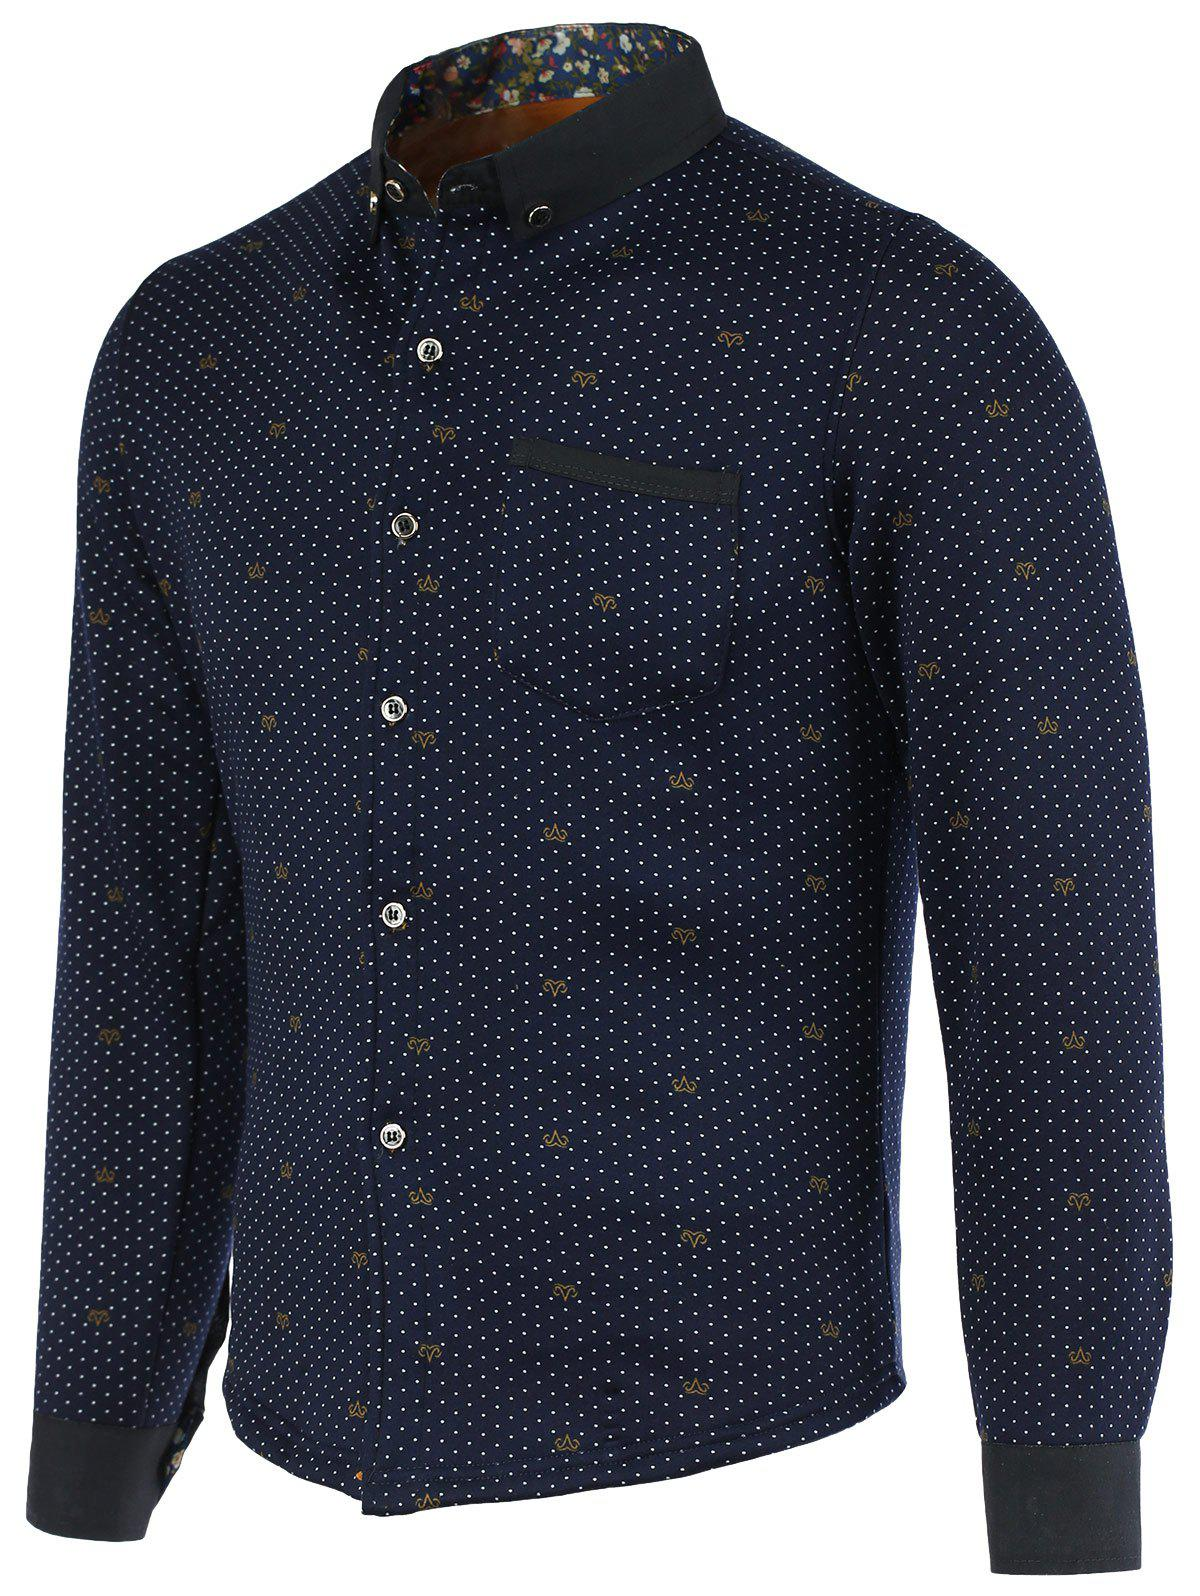 Polka Dot Fleece Turn-Down Collar Long Sleeve Button-Down Men's Shirt - 3XL PURPLISH BLUE